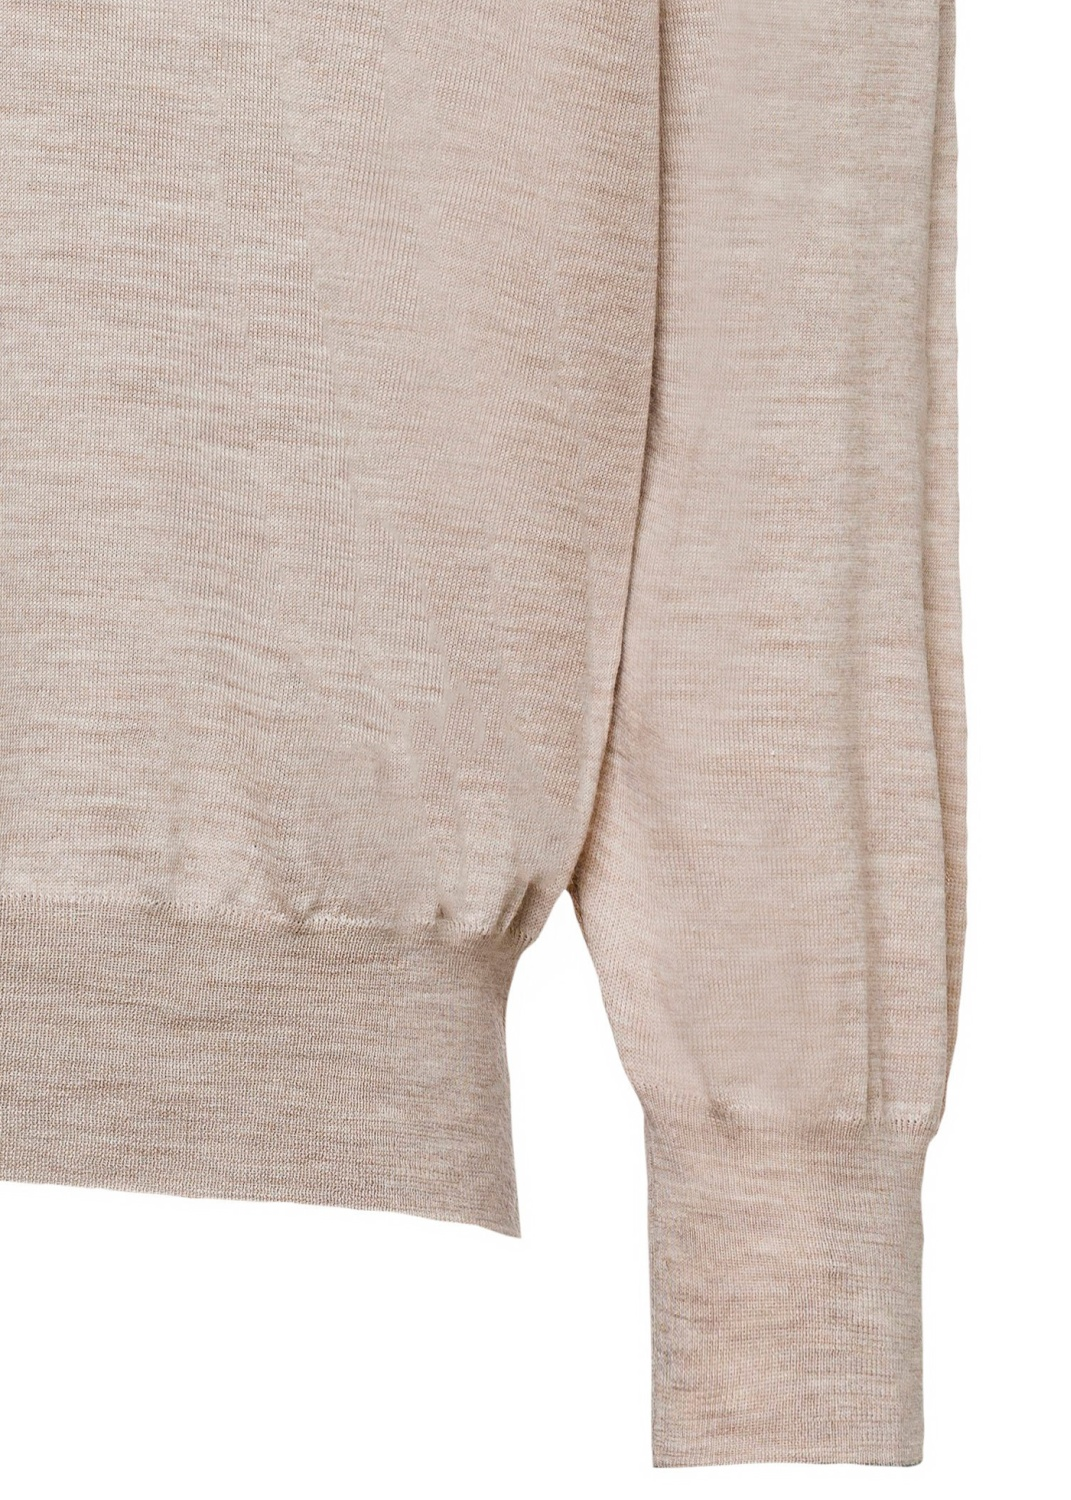 CICLISTA M/L - Pullover image number 2